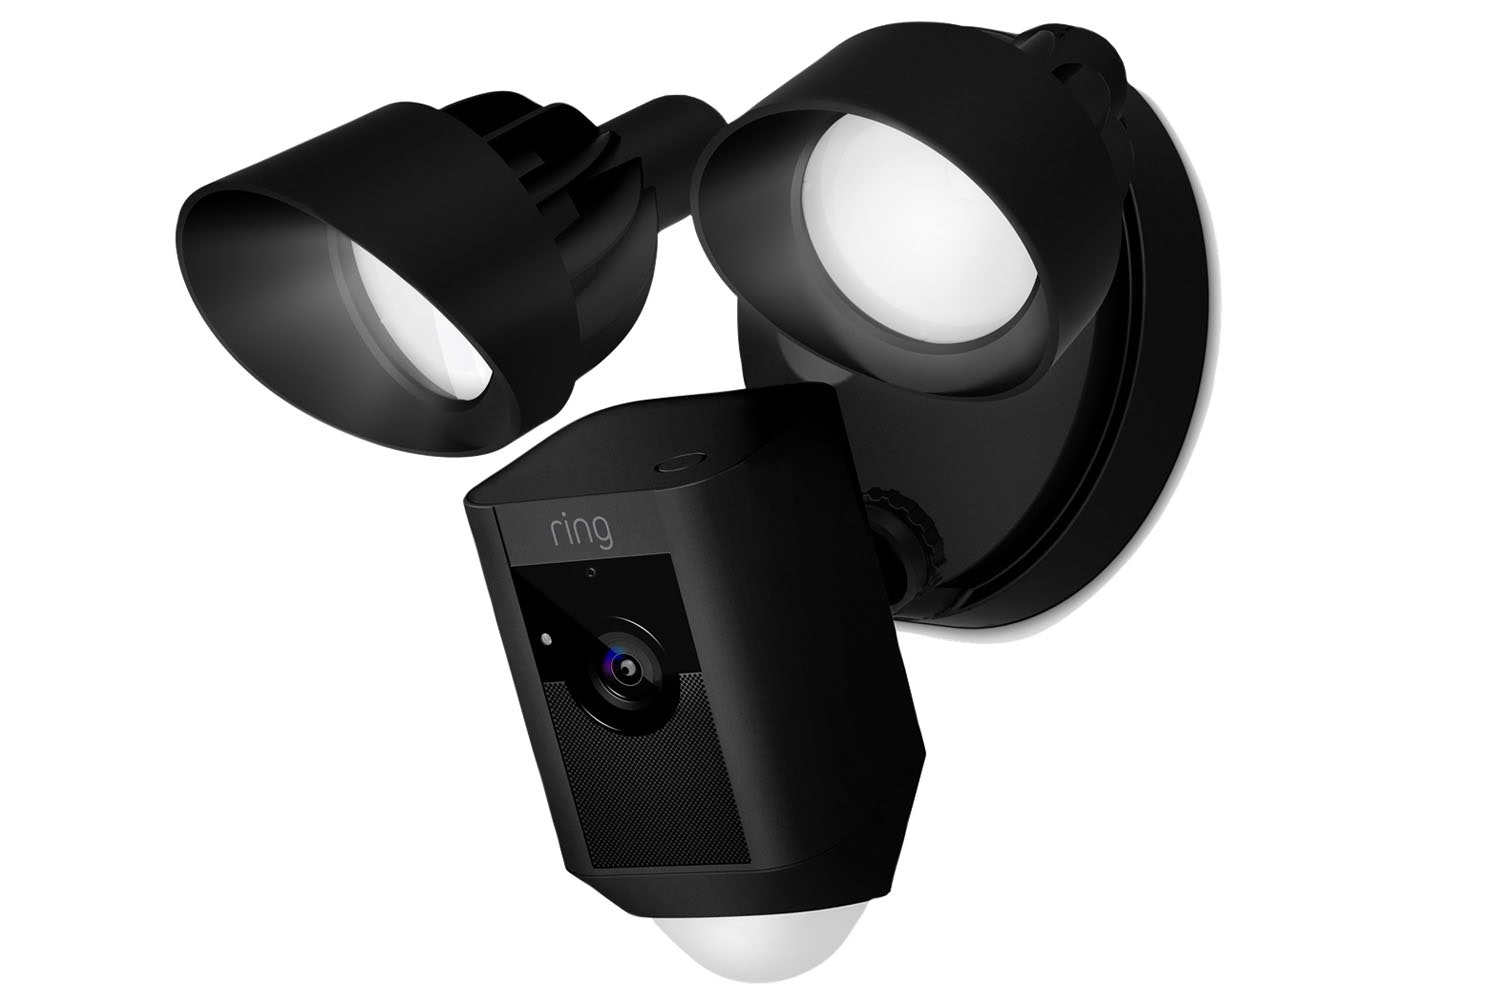 Ring Floodlight Security Camera | Black